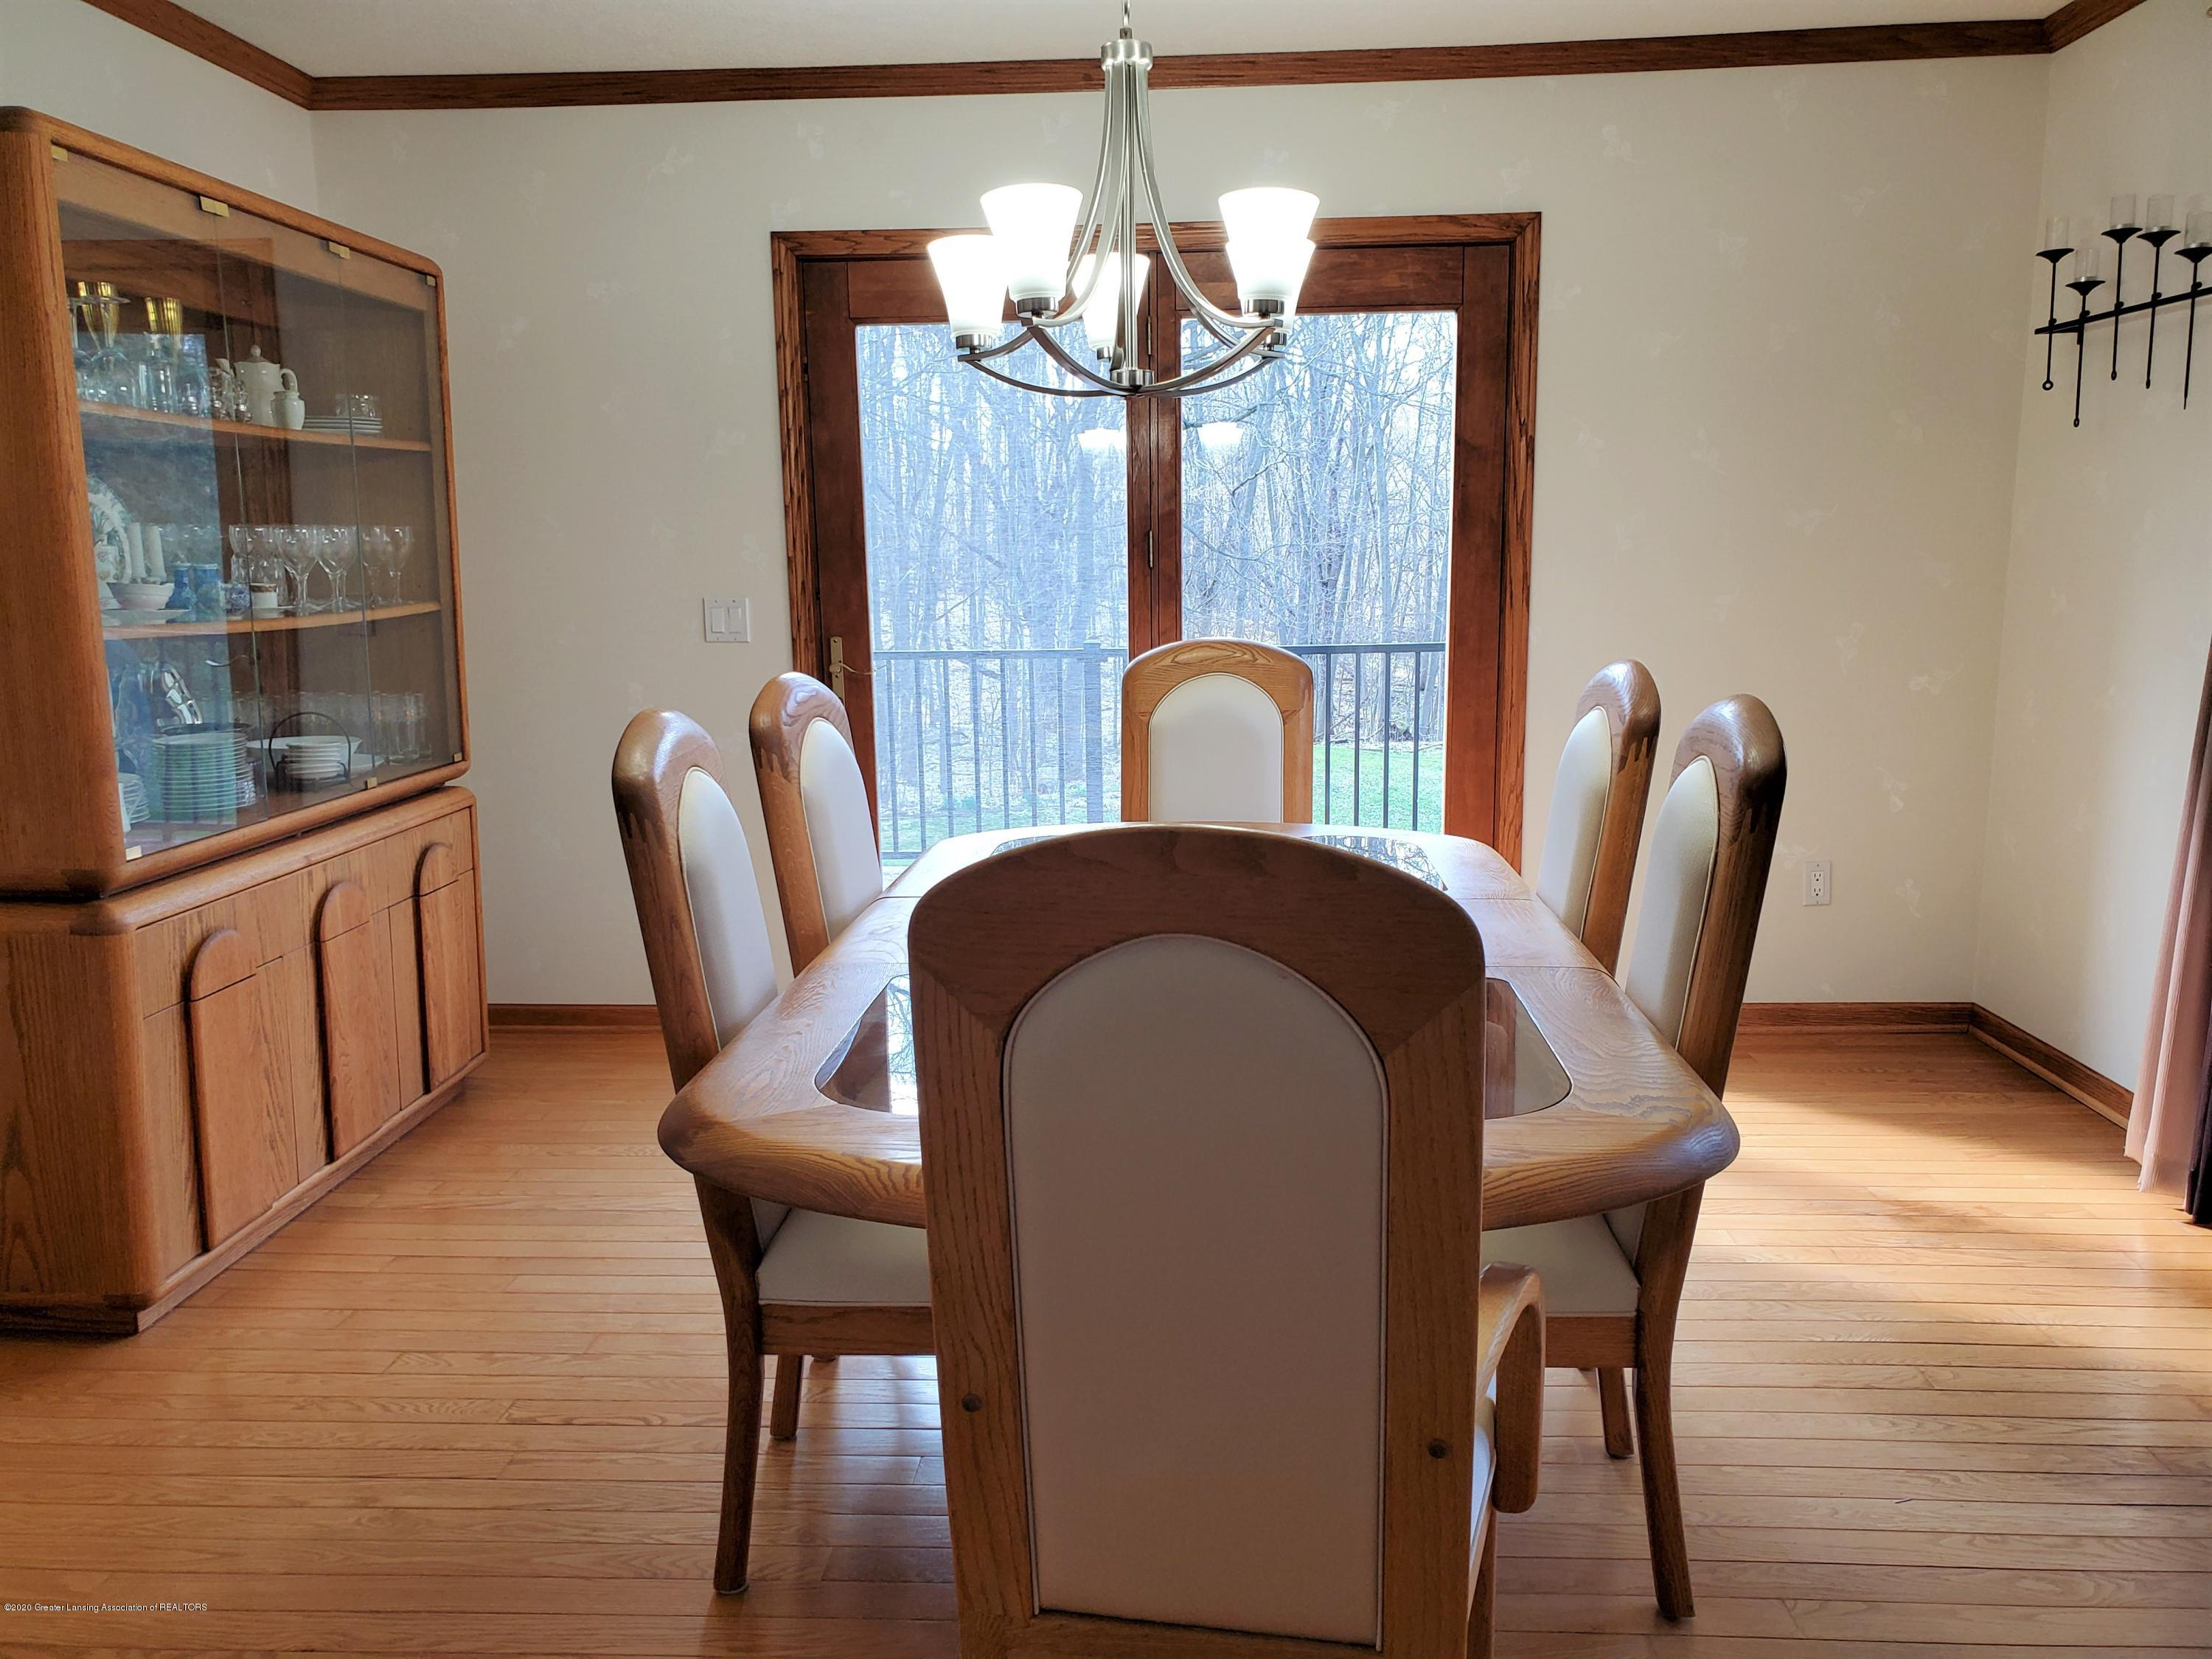 1075 Nautical Dr - Dining Room - 6